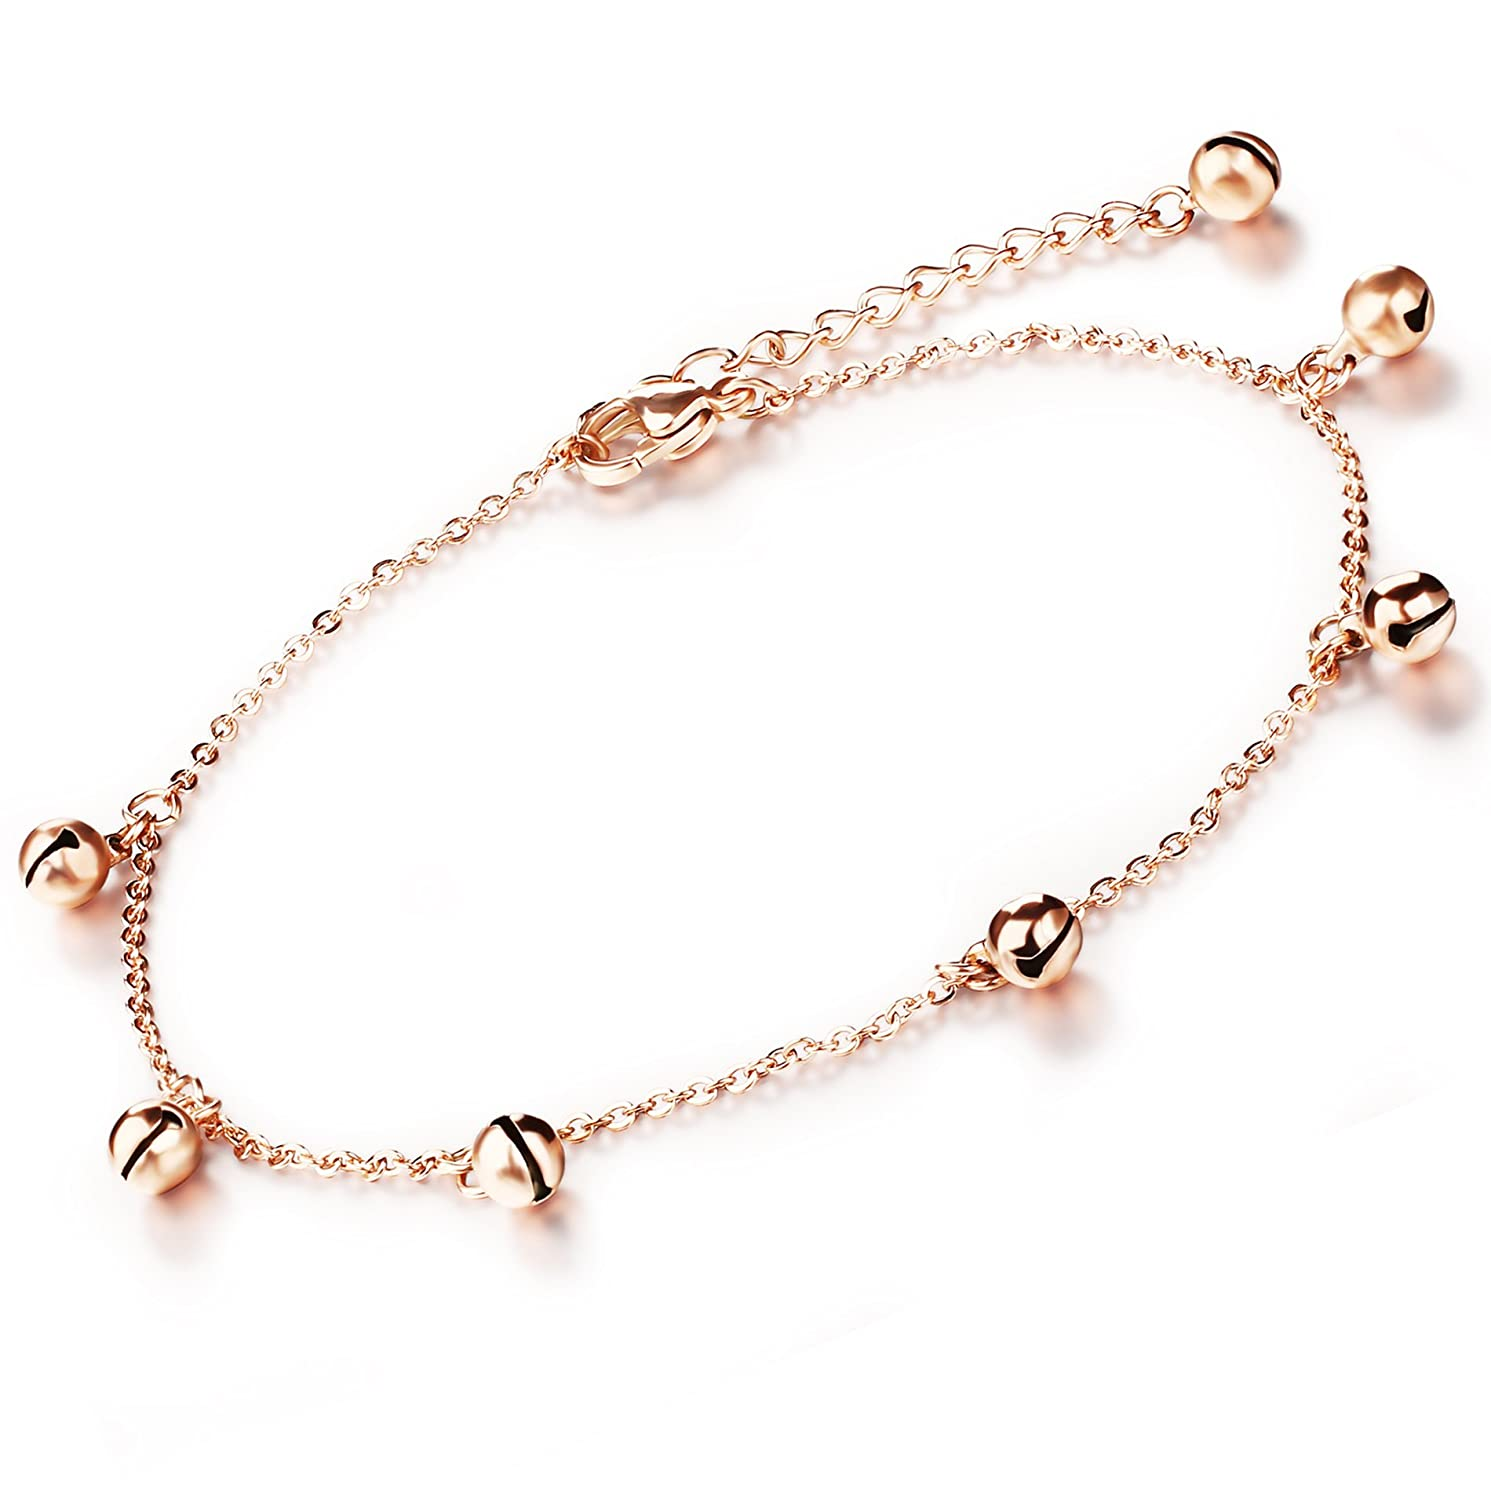 Marrymi Women Anklet Bracelet for Women Rose Gold Anklets Stainless Steel Adjustable Jewelry Set for Mother's Day Birthday and Christmas'S Day Best Gift